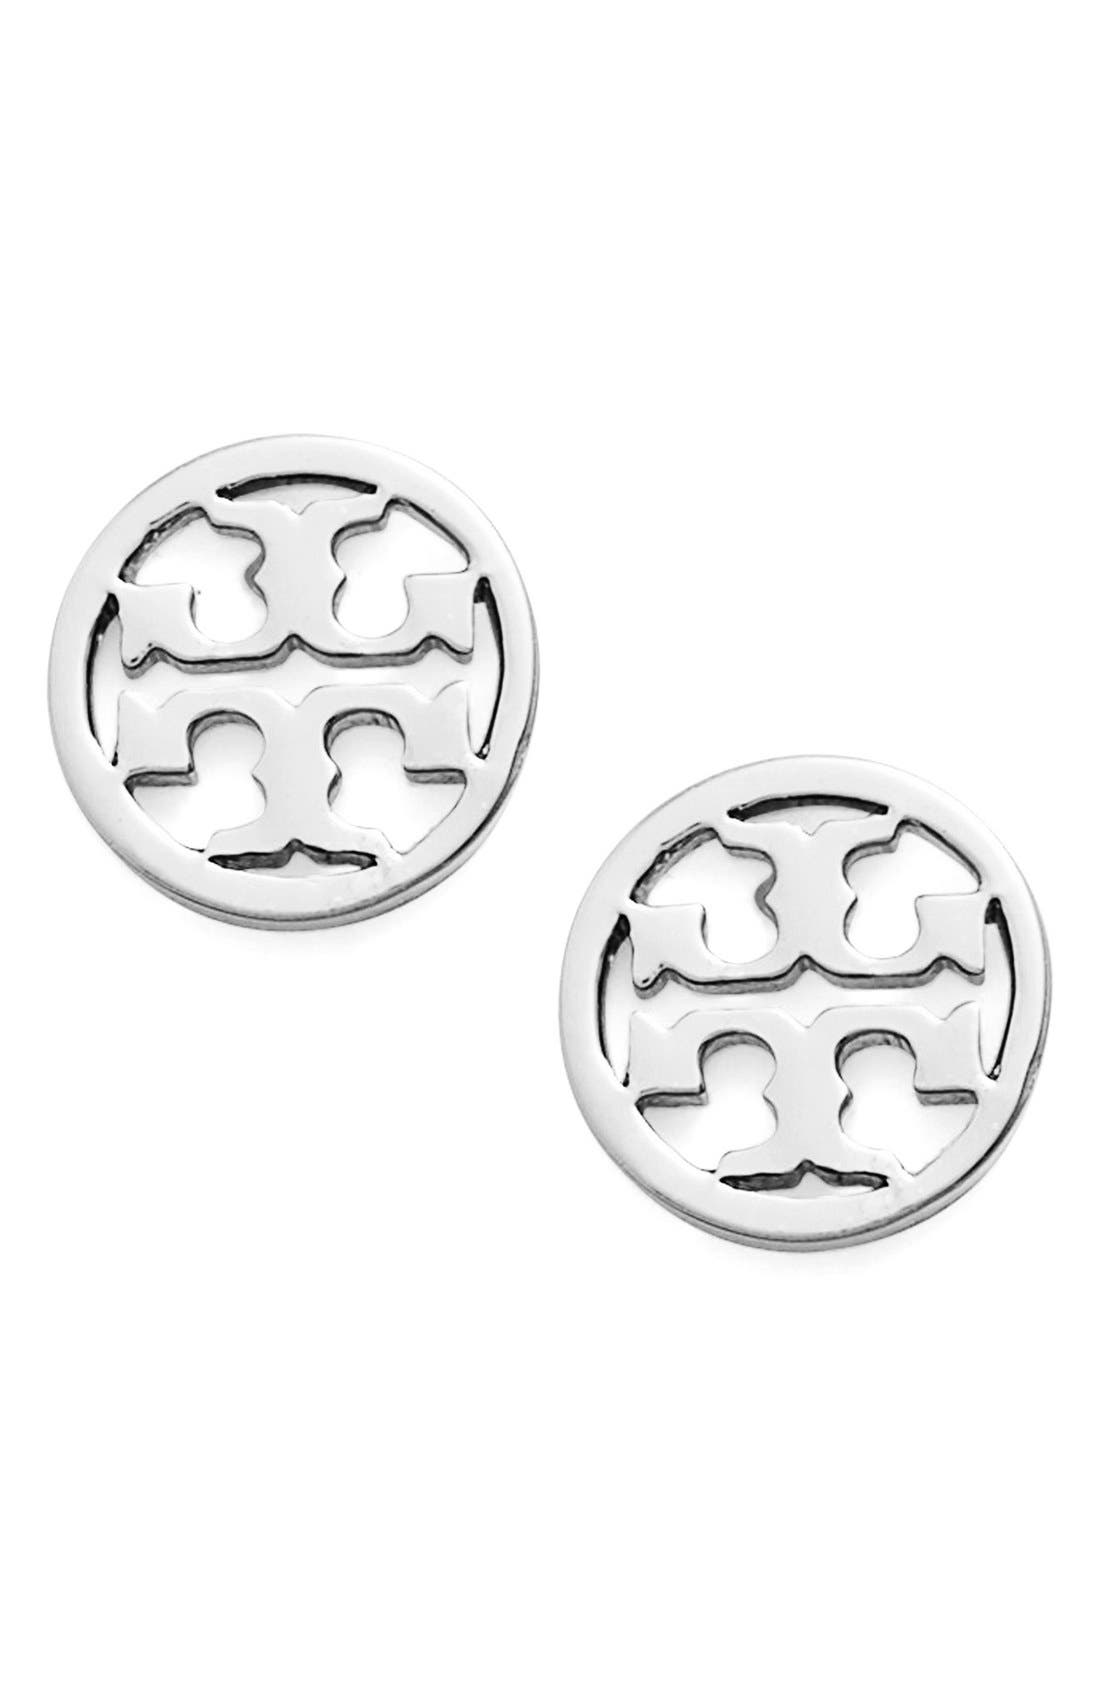 Alternate Image 1 Selected - Tory Burch Circle Logo Stud Earrings